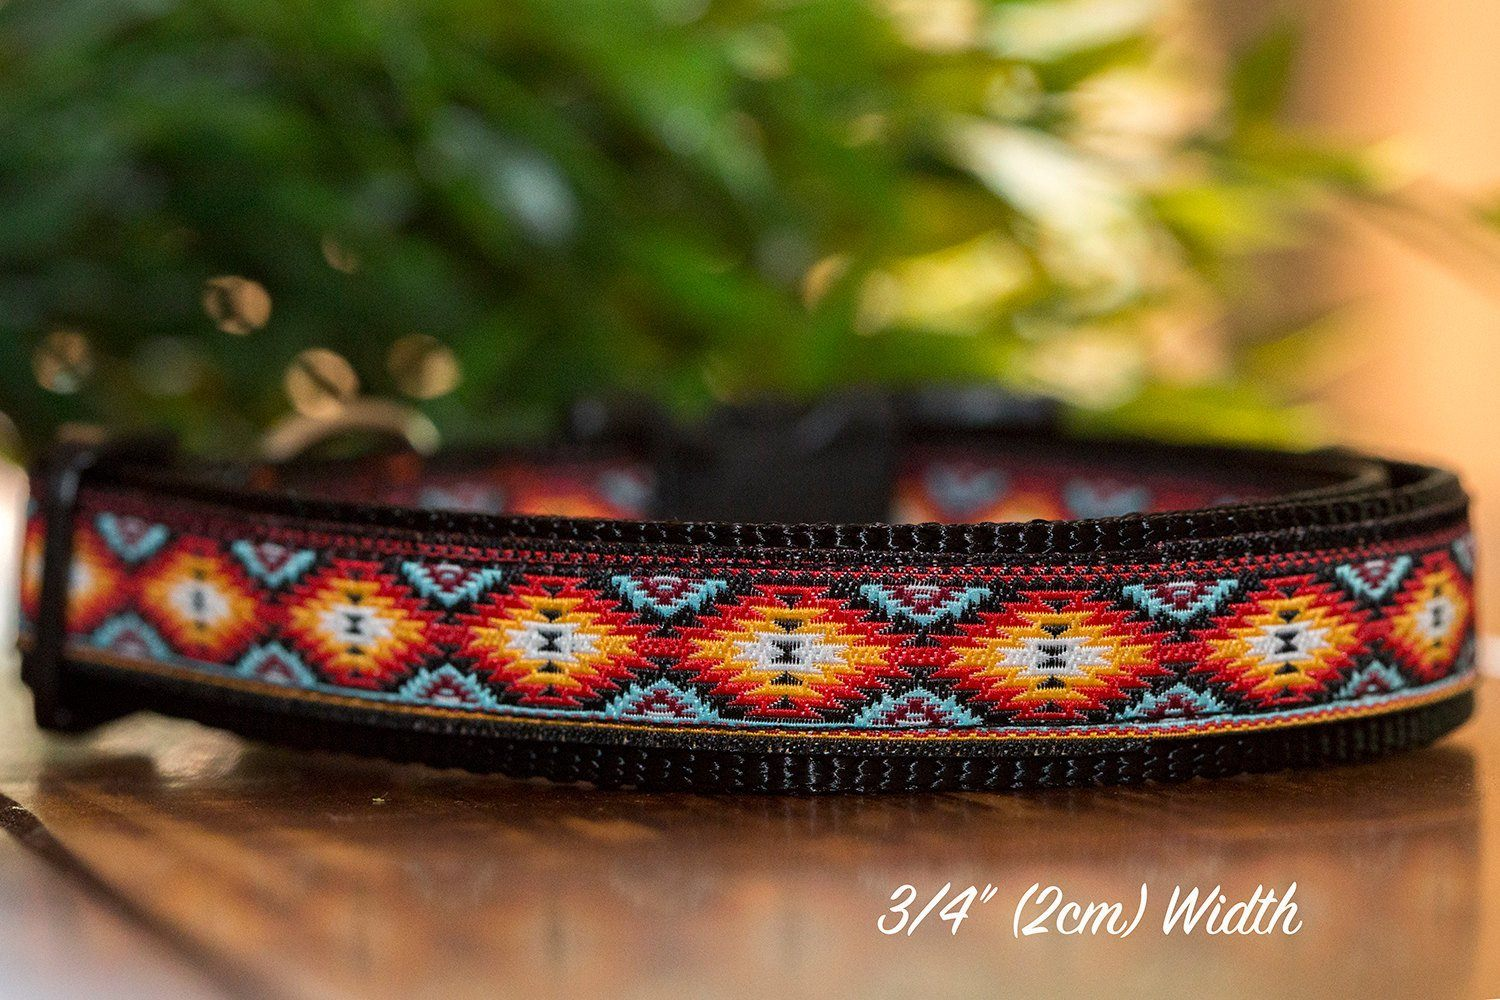 "Navajo Dog Collar XS-XL-Dog Collar-Dizzy Dog Collars-Extra Small 5/8"" (1.5cm) Wide-Dizzy Dog Collars"